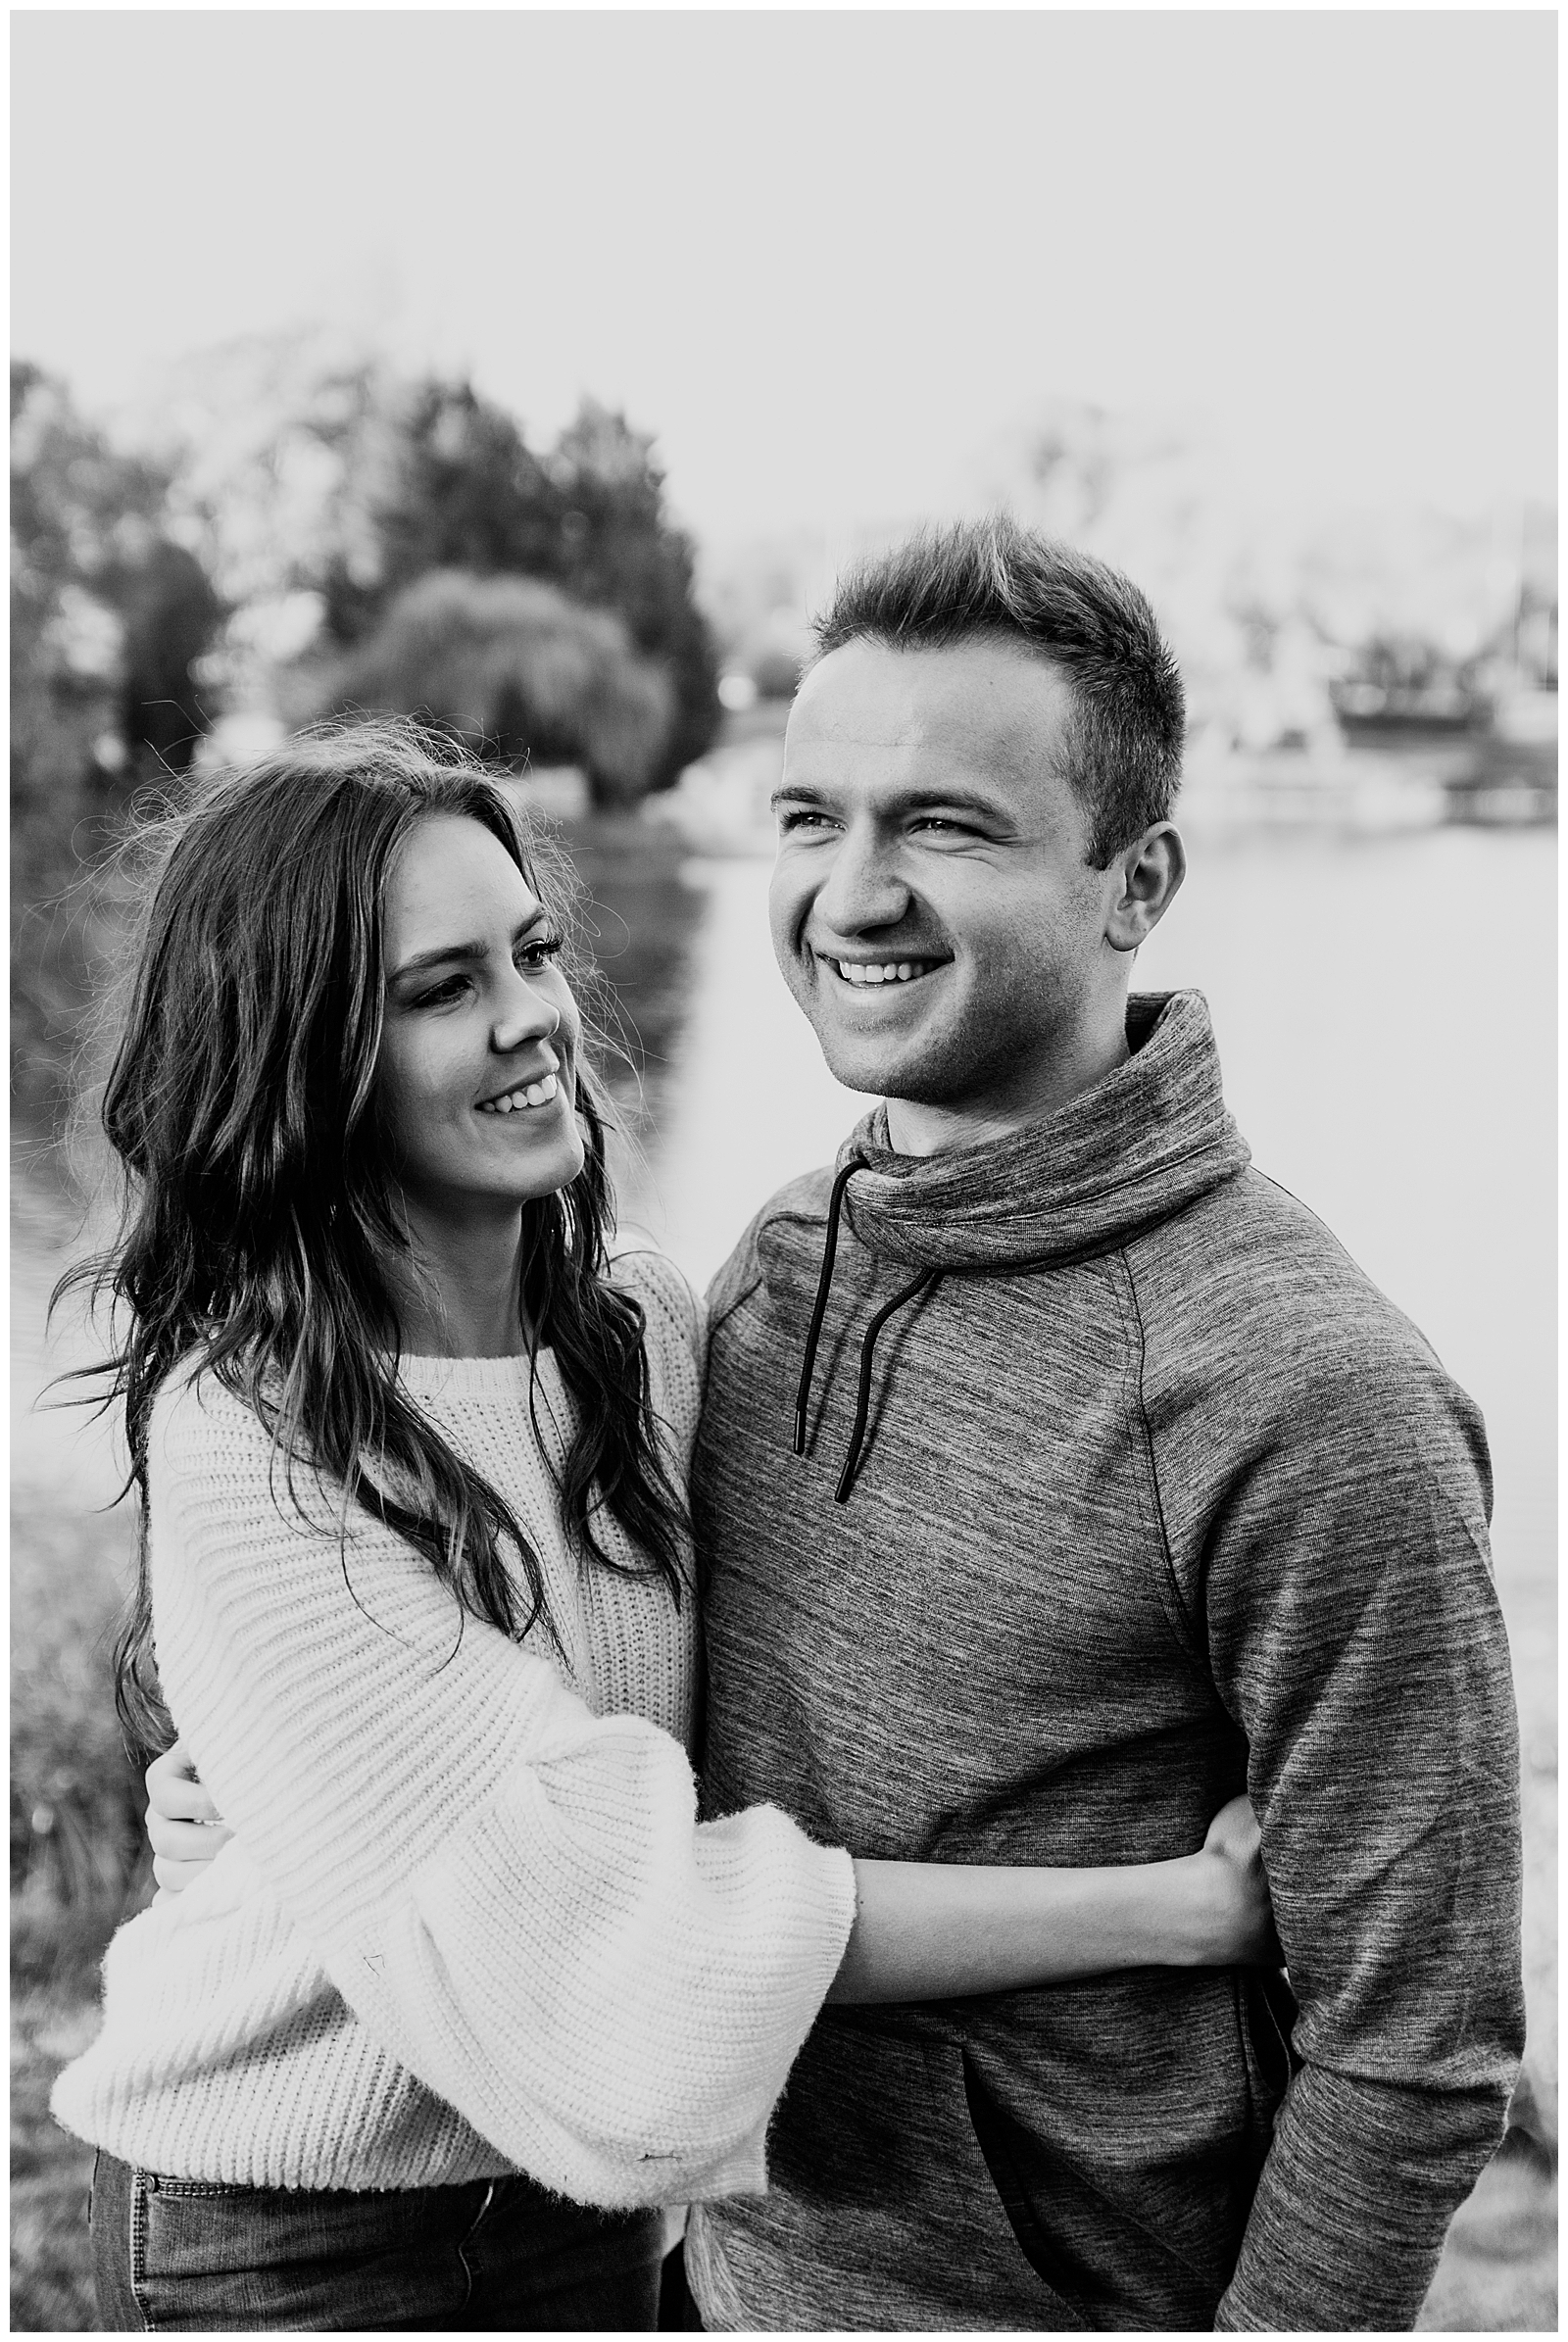 Vadim + Liana | Lake Sacajawea | Highlights | Annie Zav Photography | Anastasiya Zavrazhina | Highlights |29.JPG